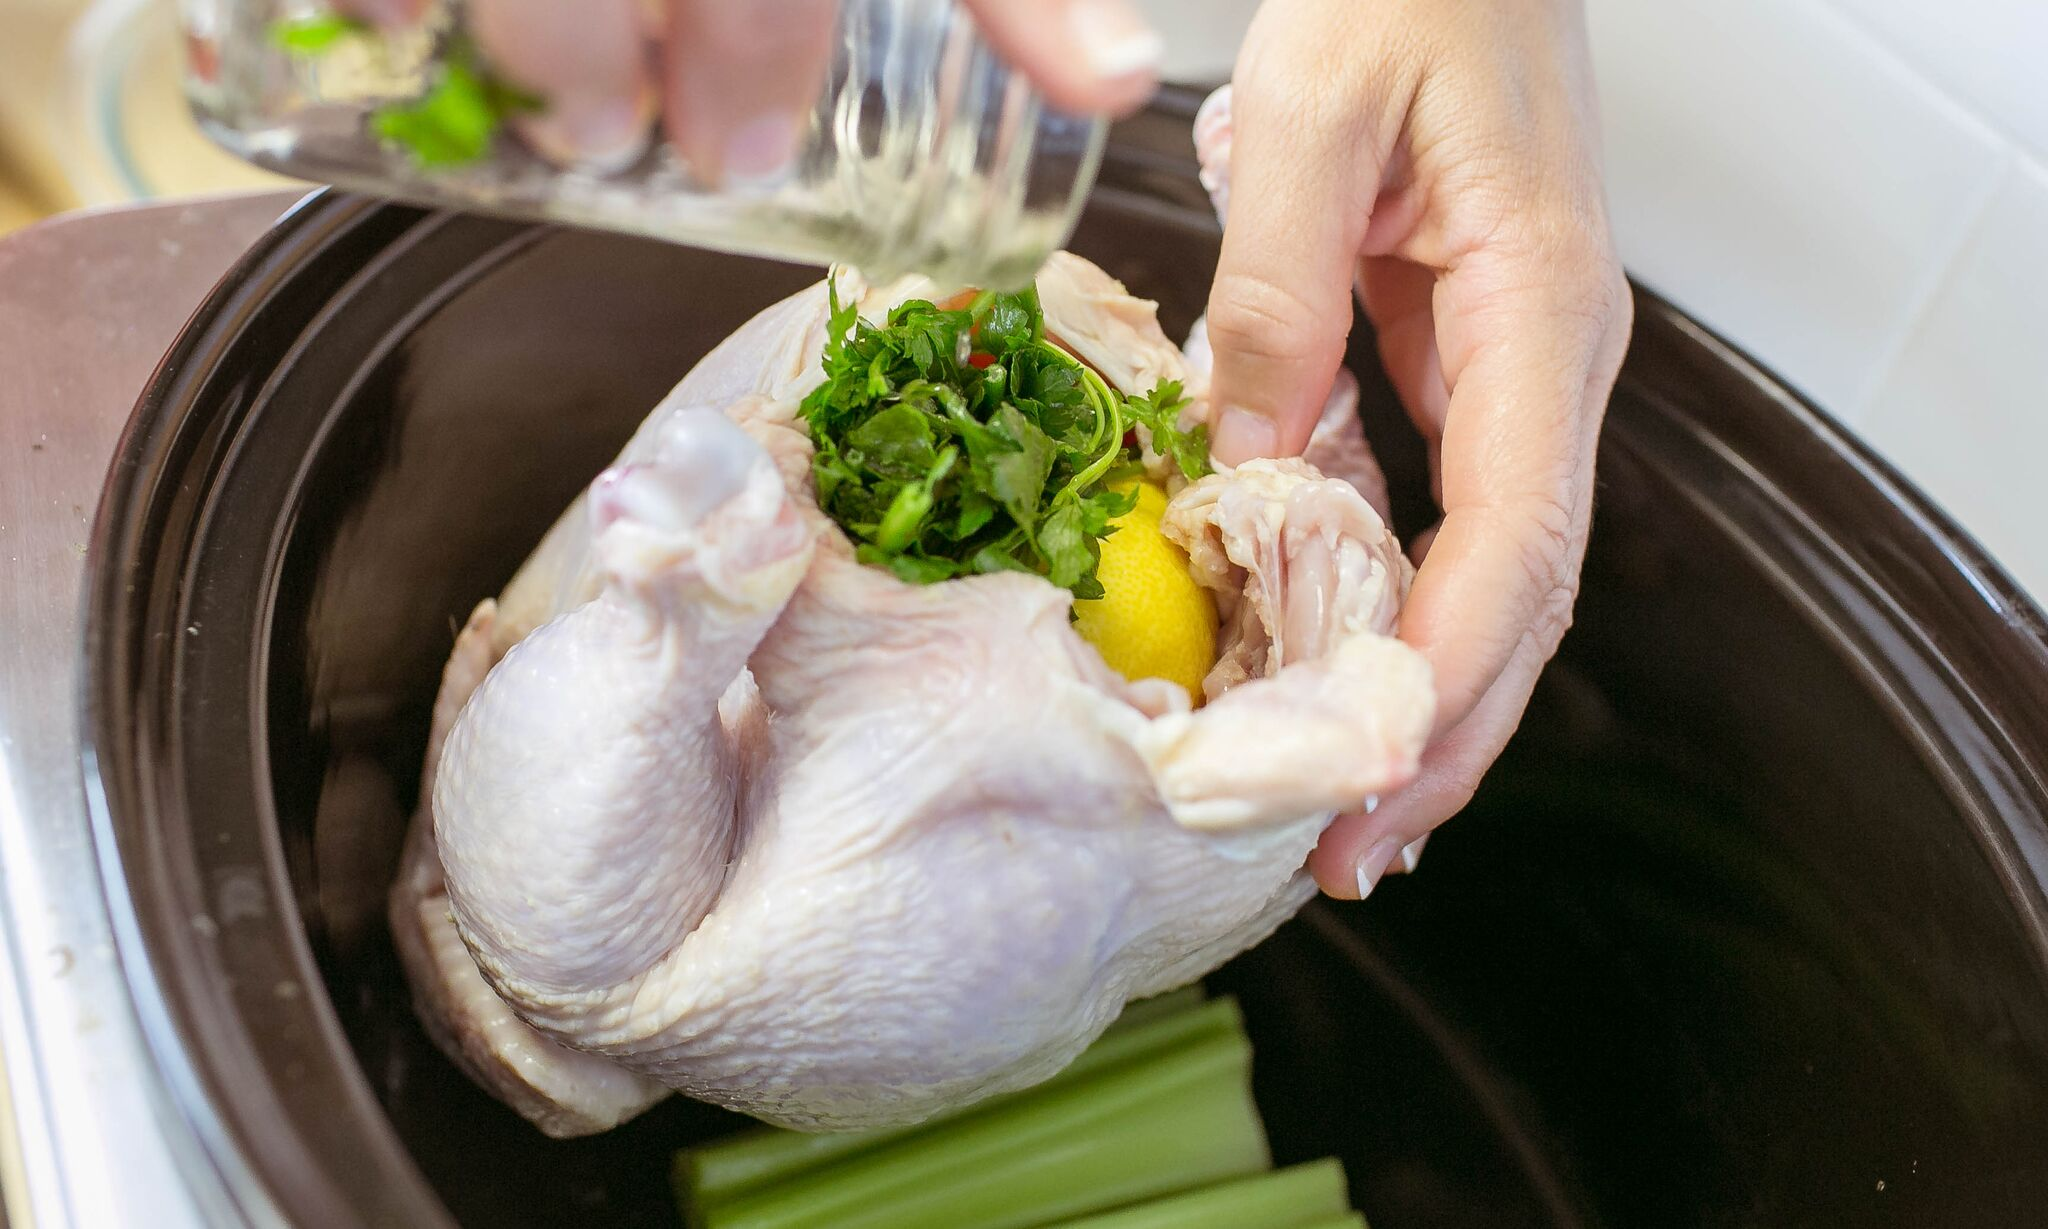 Add lemon juice and parsley to cavity of chicken.